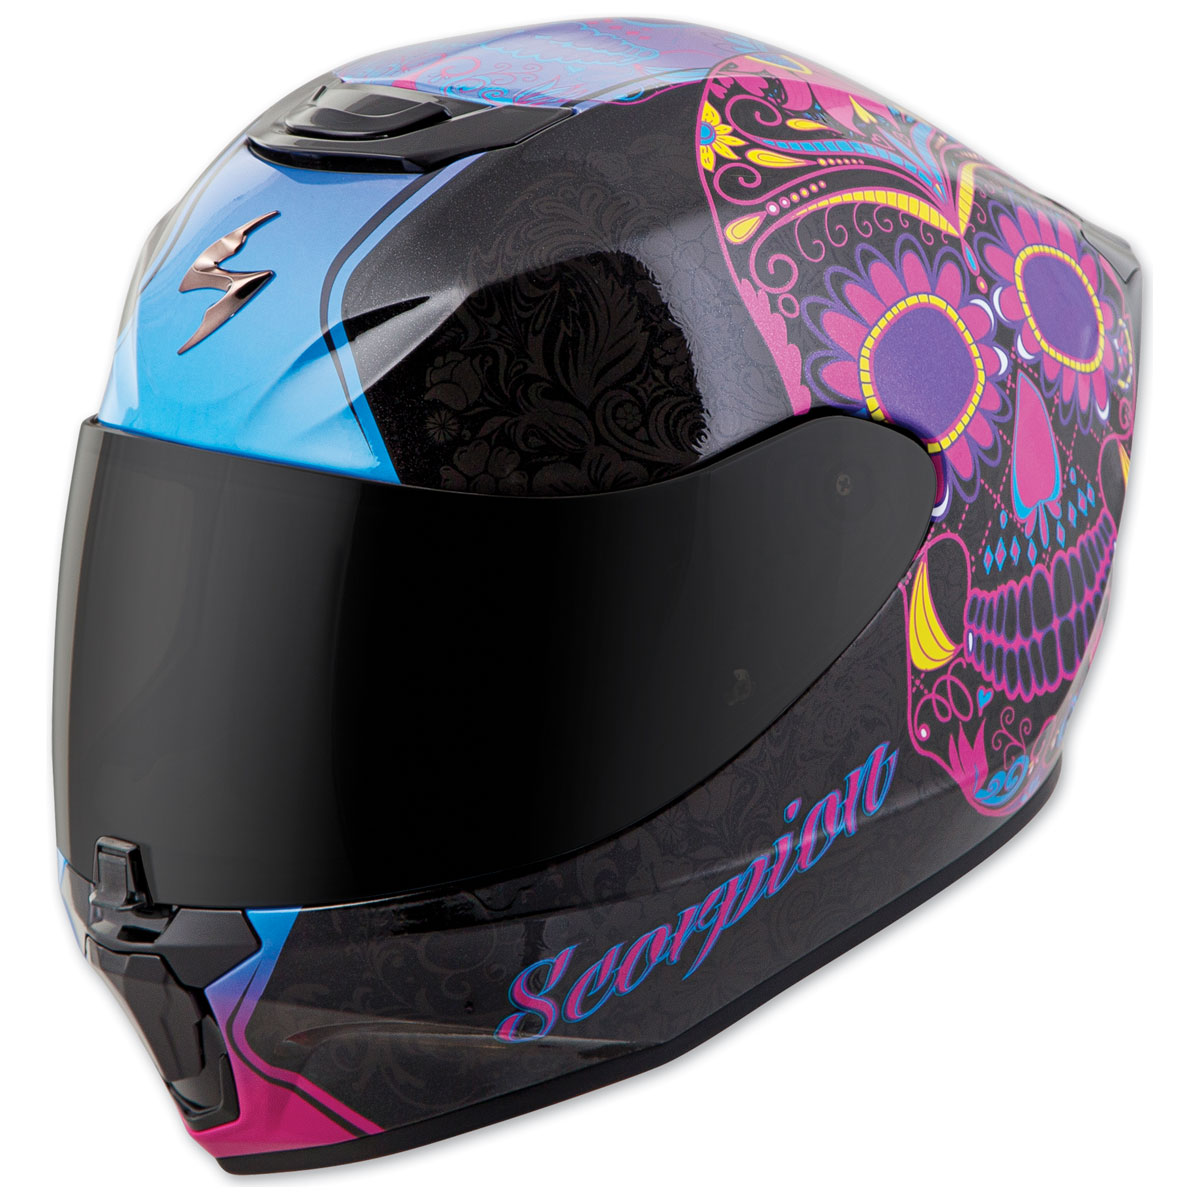 Scorpion EXO EXO-R420 Sugarskull Black/Pink Full Face Helmet